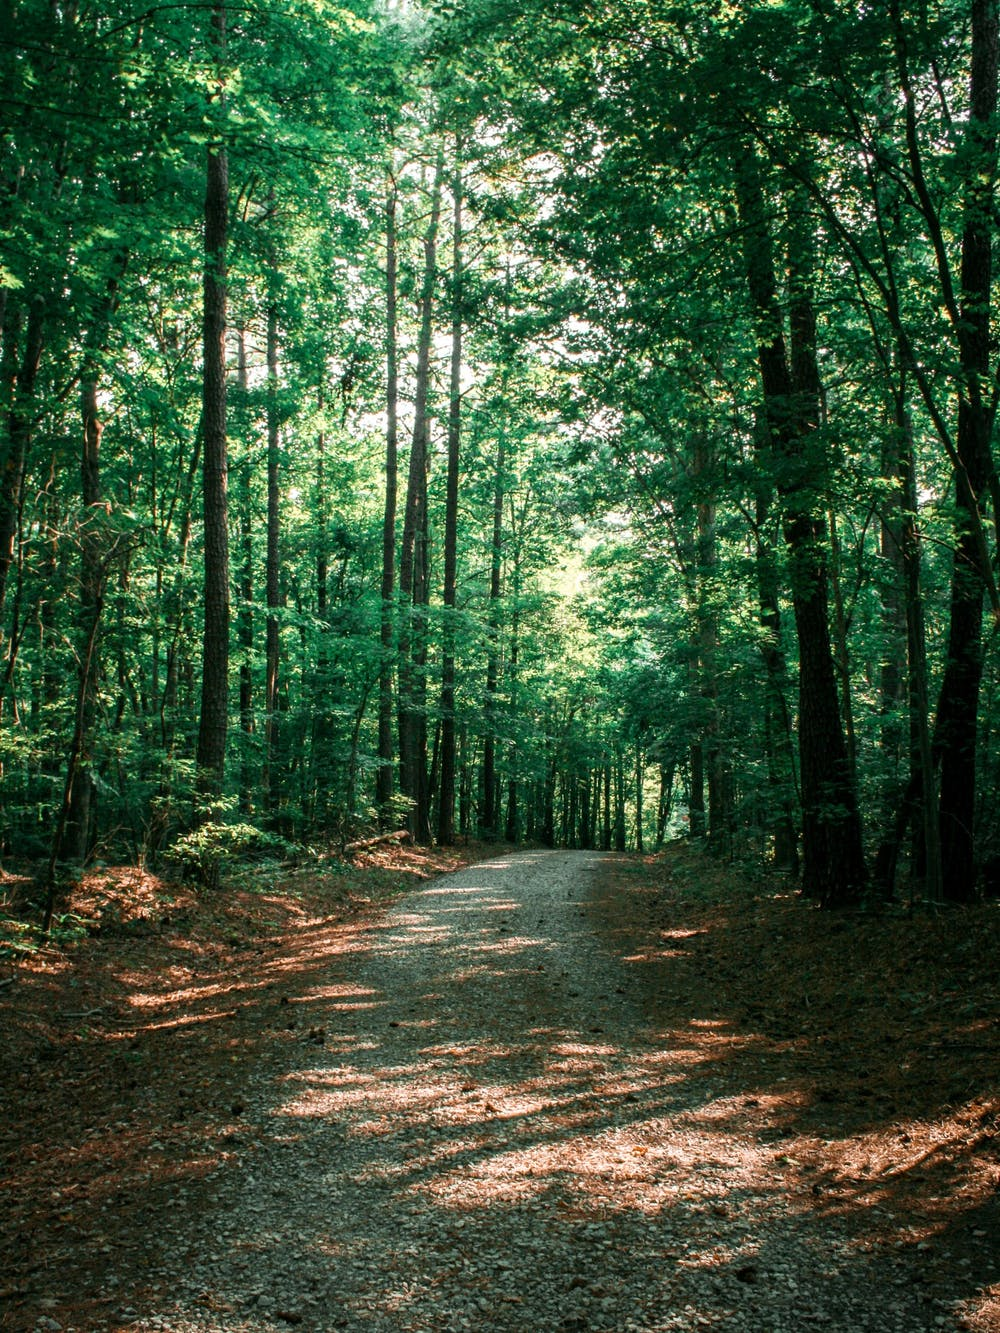 University Adds 27 Acres To Duke Forest To Stop Development